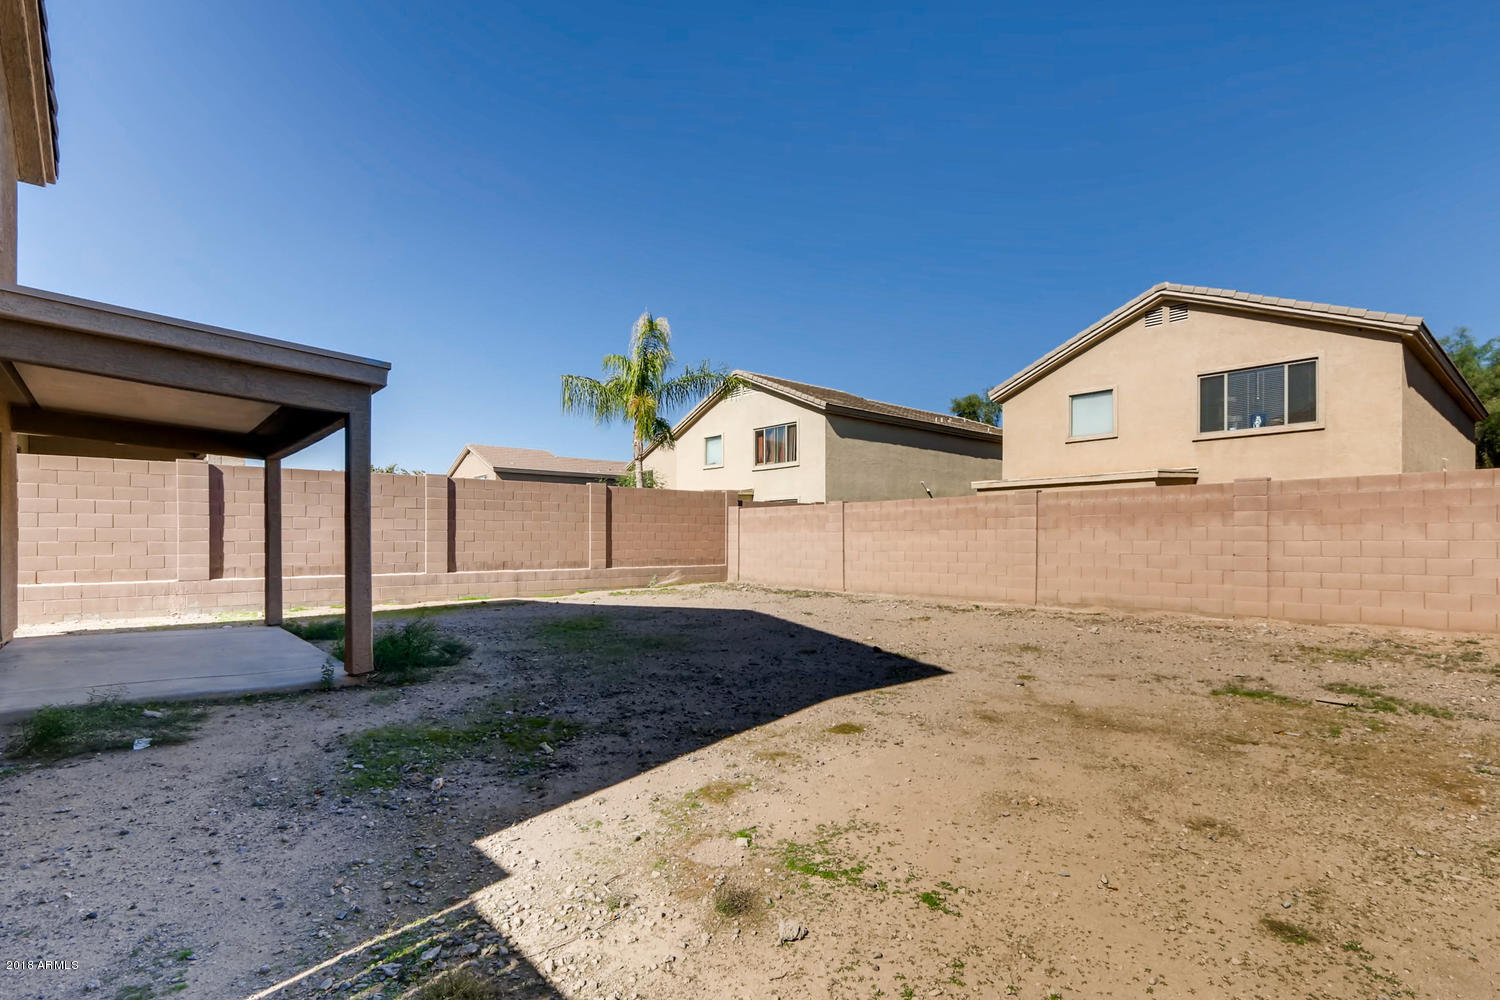 MLS 5845395 12362 W GLENROSA Avenue, Avondale, AZ 85392 Avondale AZ Eco-Friendly